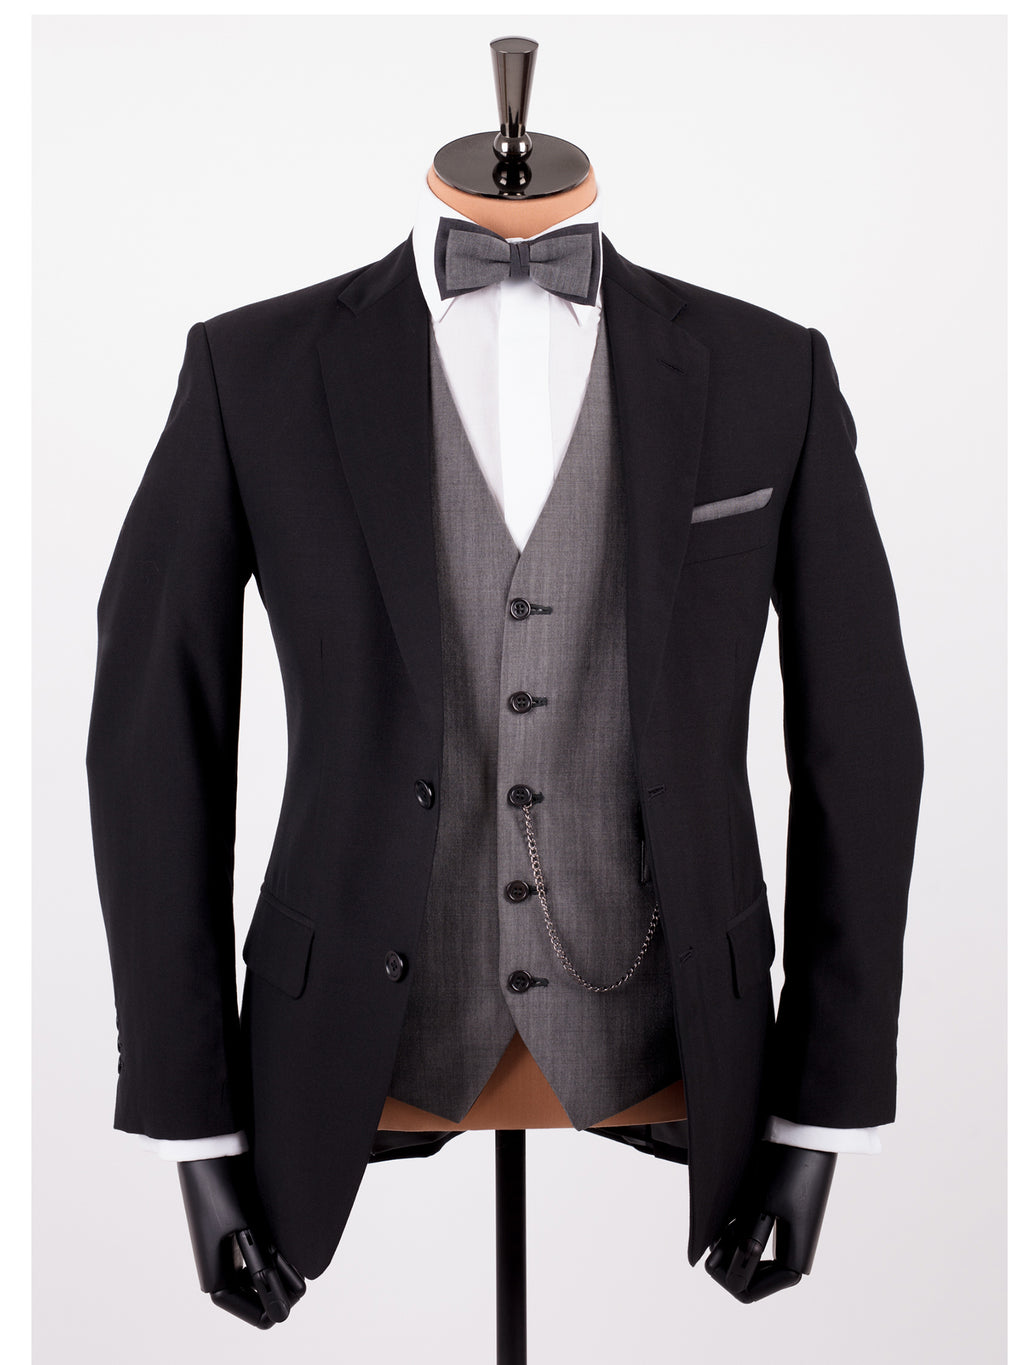 Black Mohair Wedding Suit